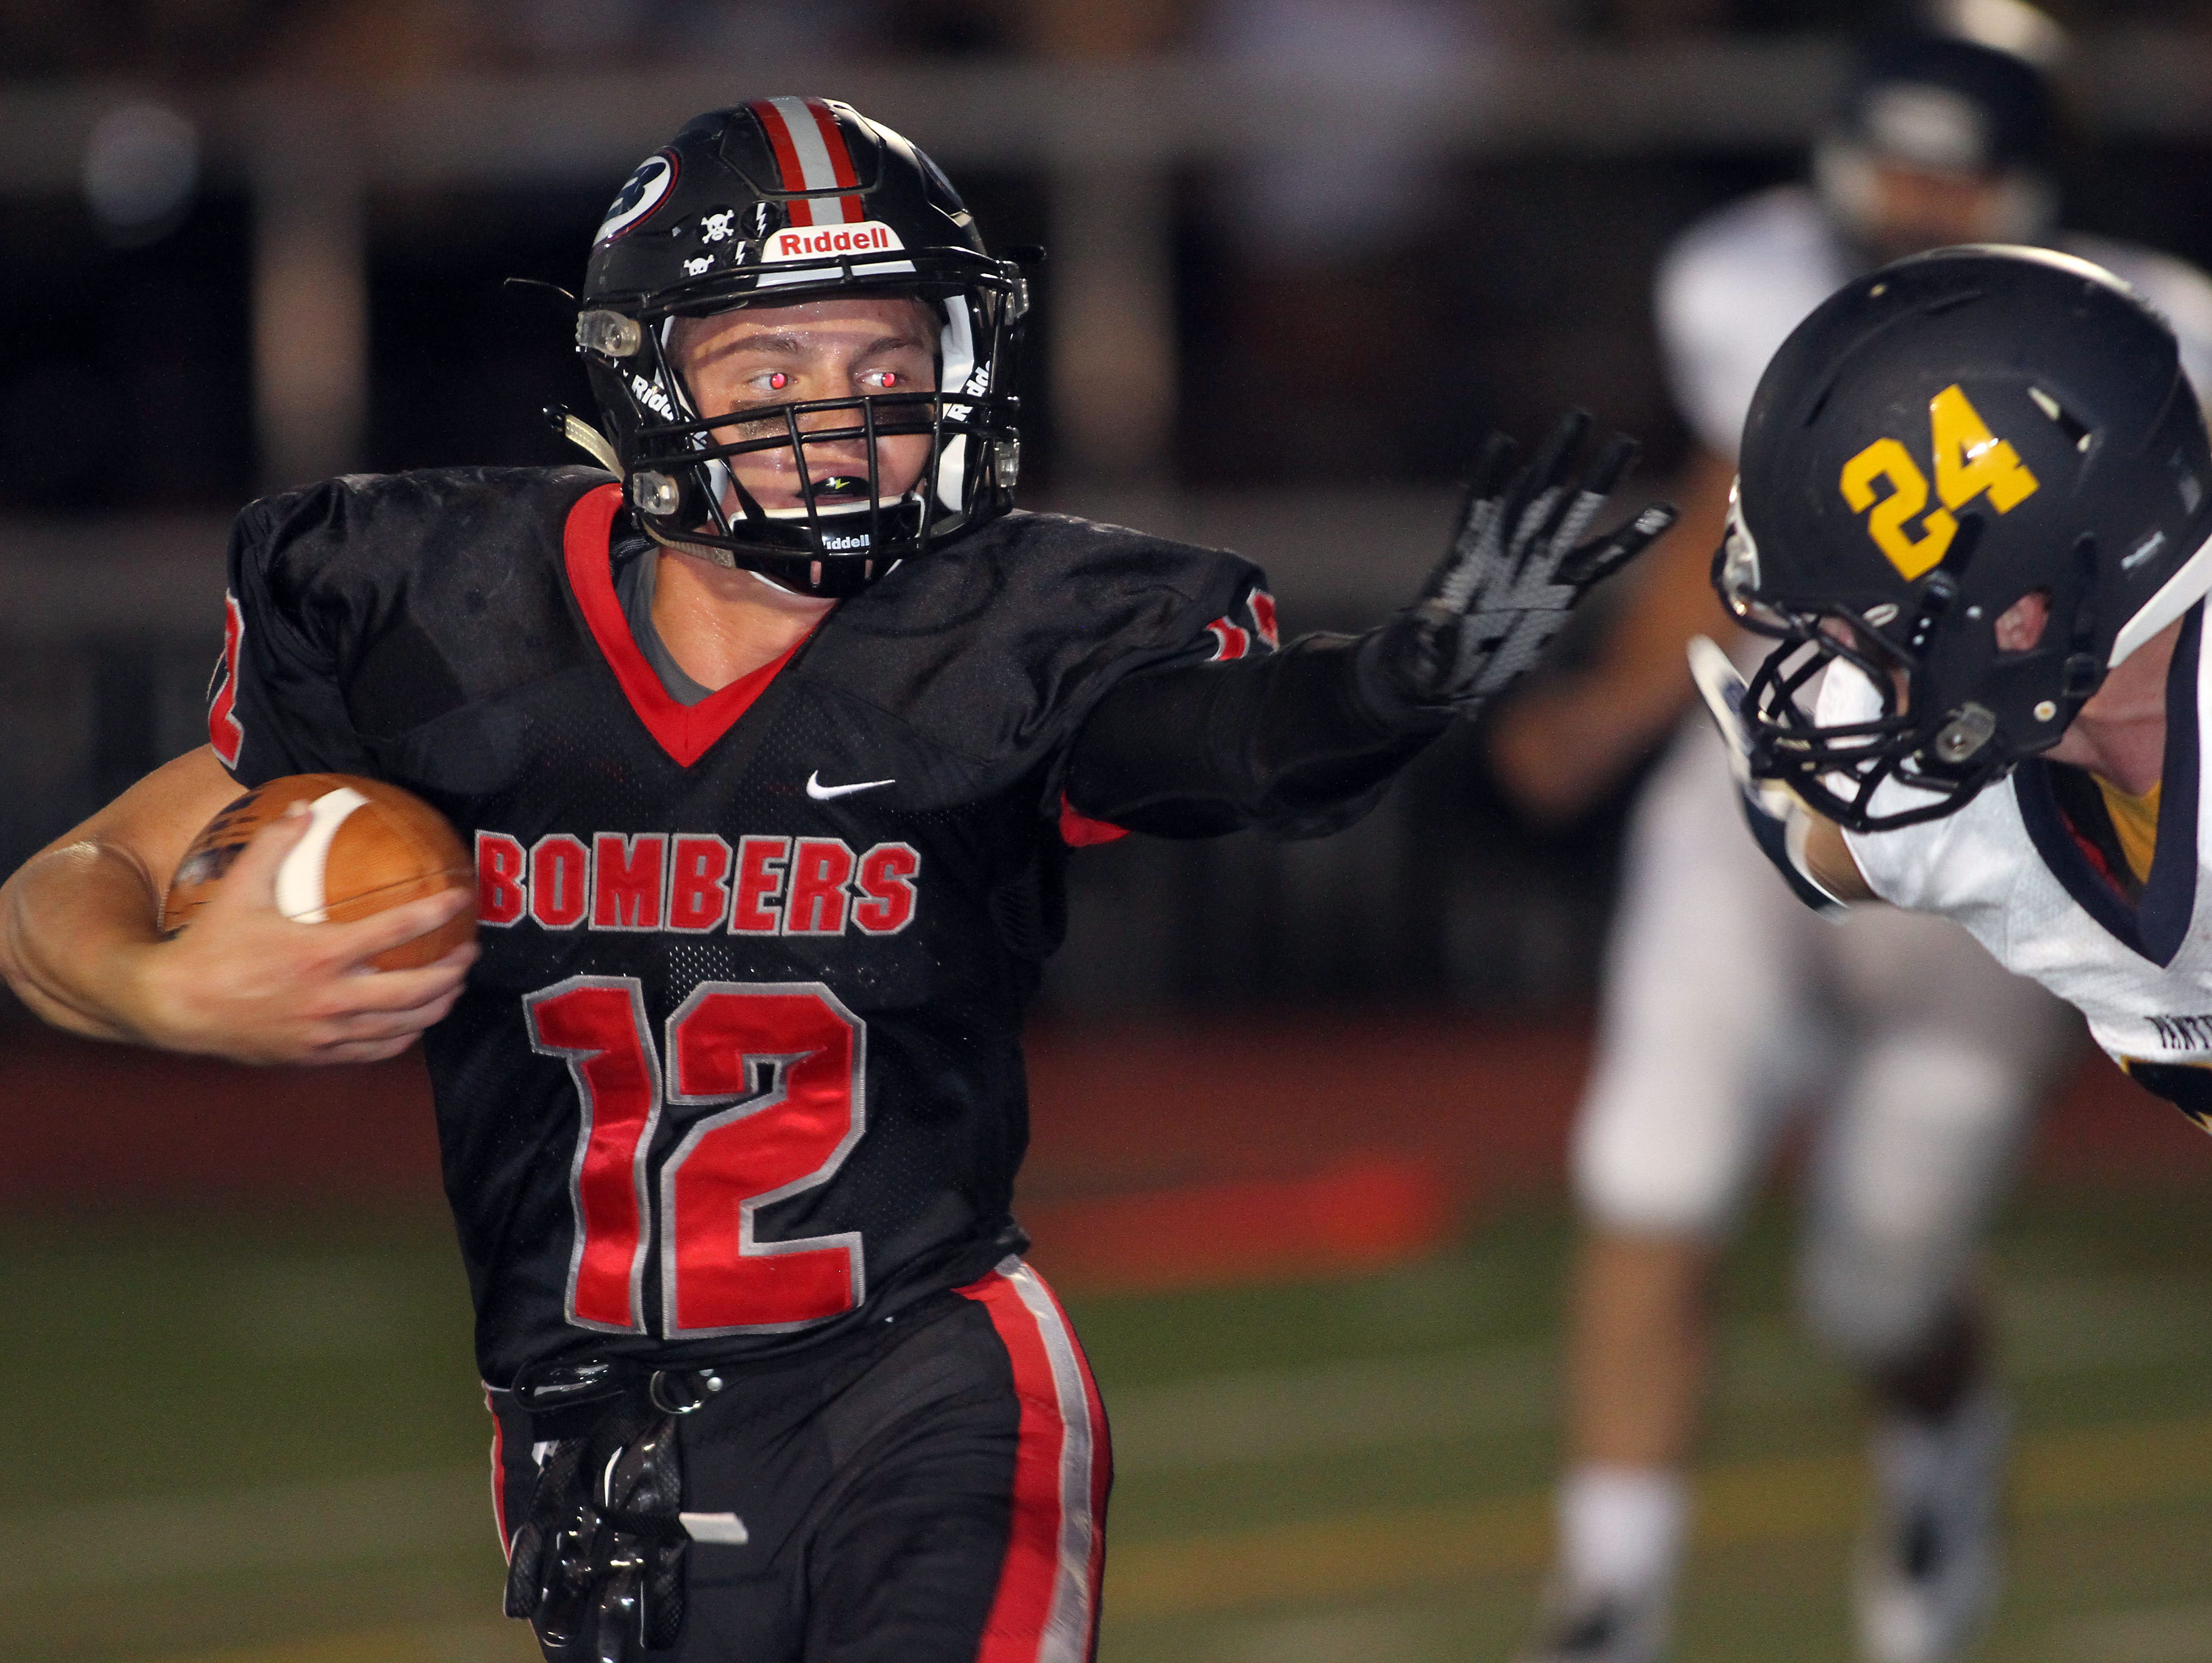 Boonton quarterback Gage Cabalar heads to the end zone for a first half TD vs Pequannock during their Friday night football matchup. September 18, 2015, Boonton, NJ.